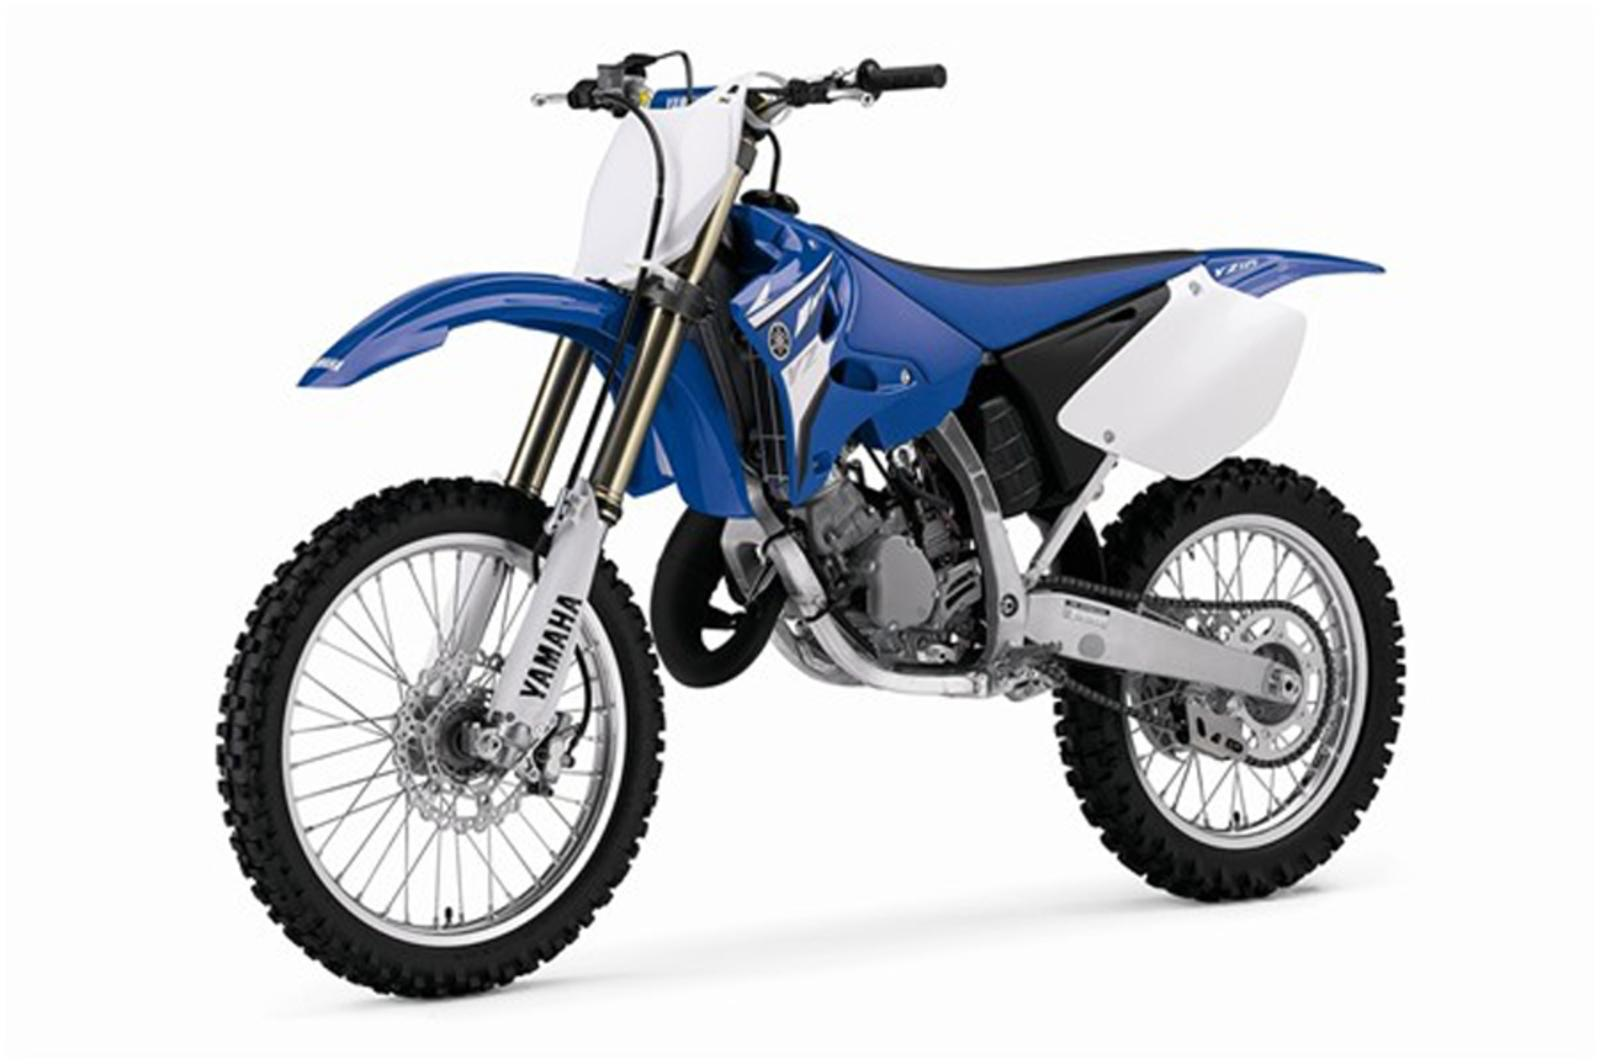 What Size Dirt Bikes Does Yamaha Make